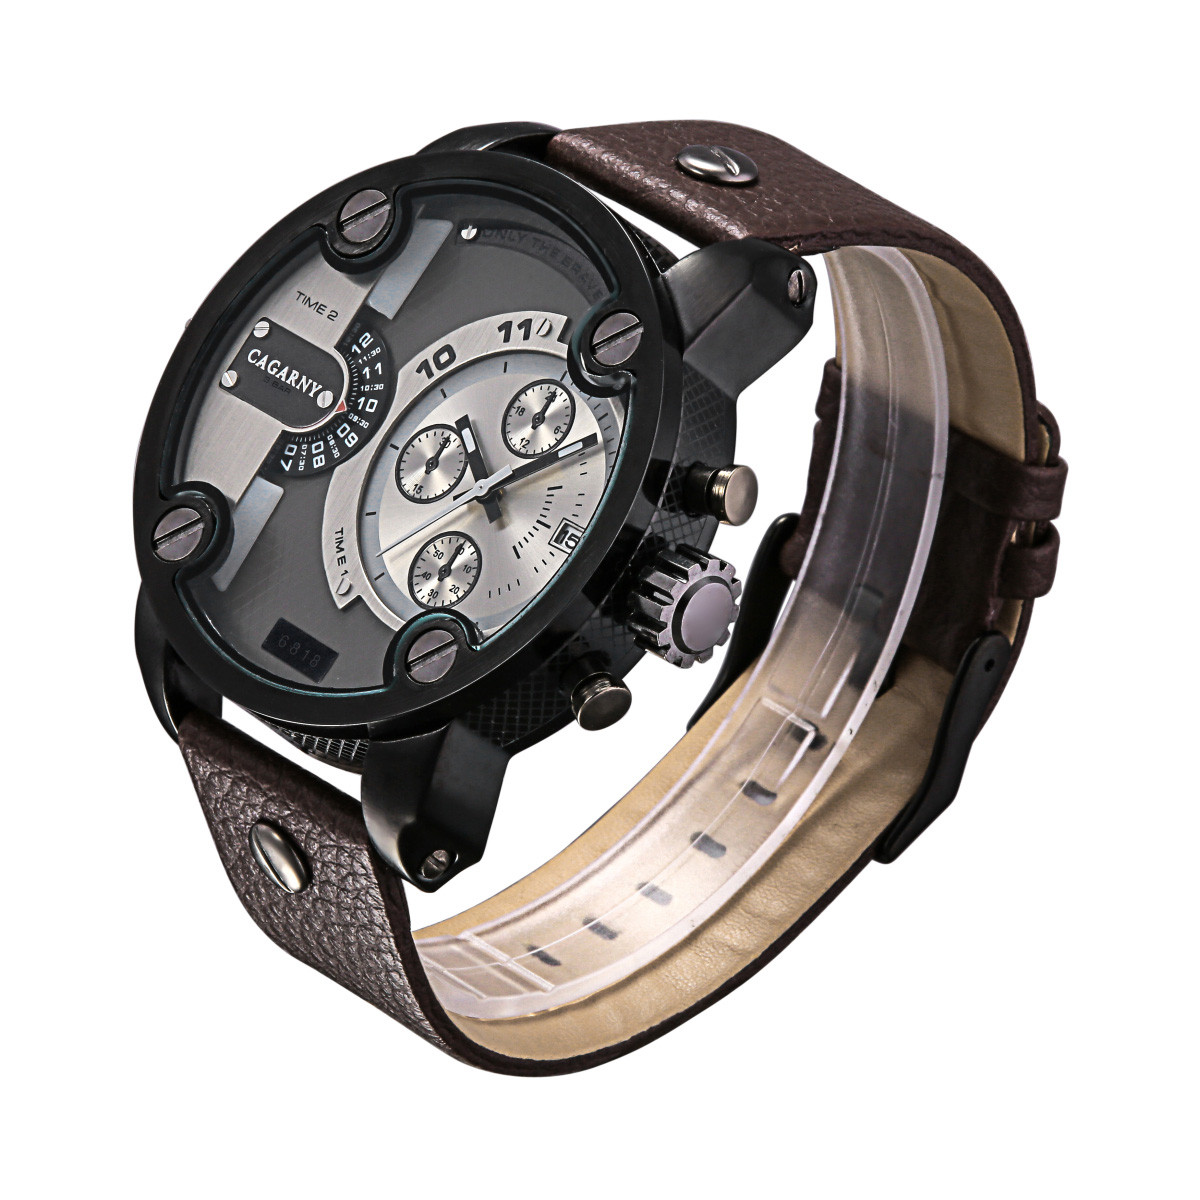 CAGARNY 6818 Fashion Male Quartz Watch with Three Decorative Sub-dials